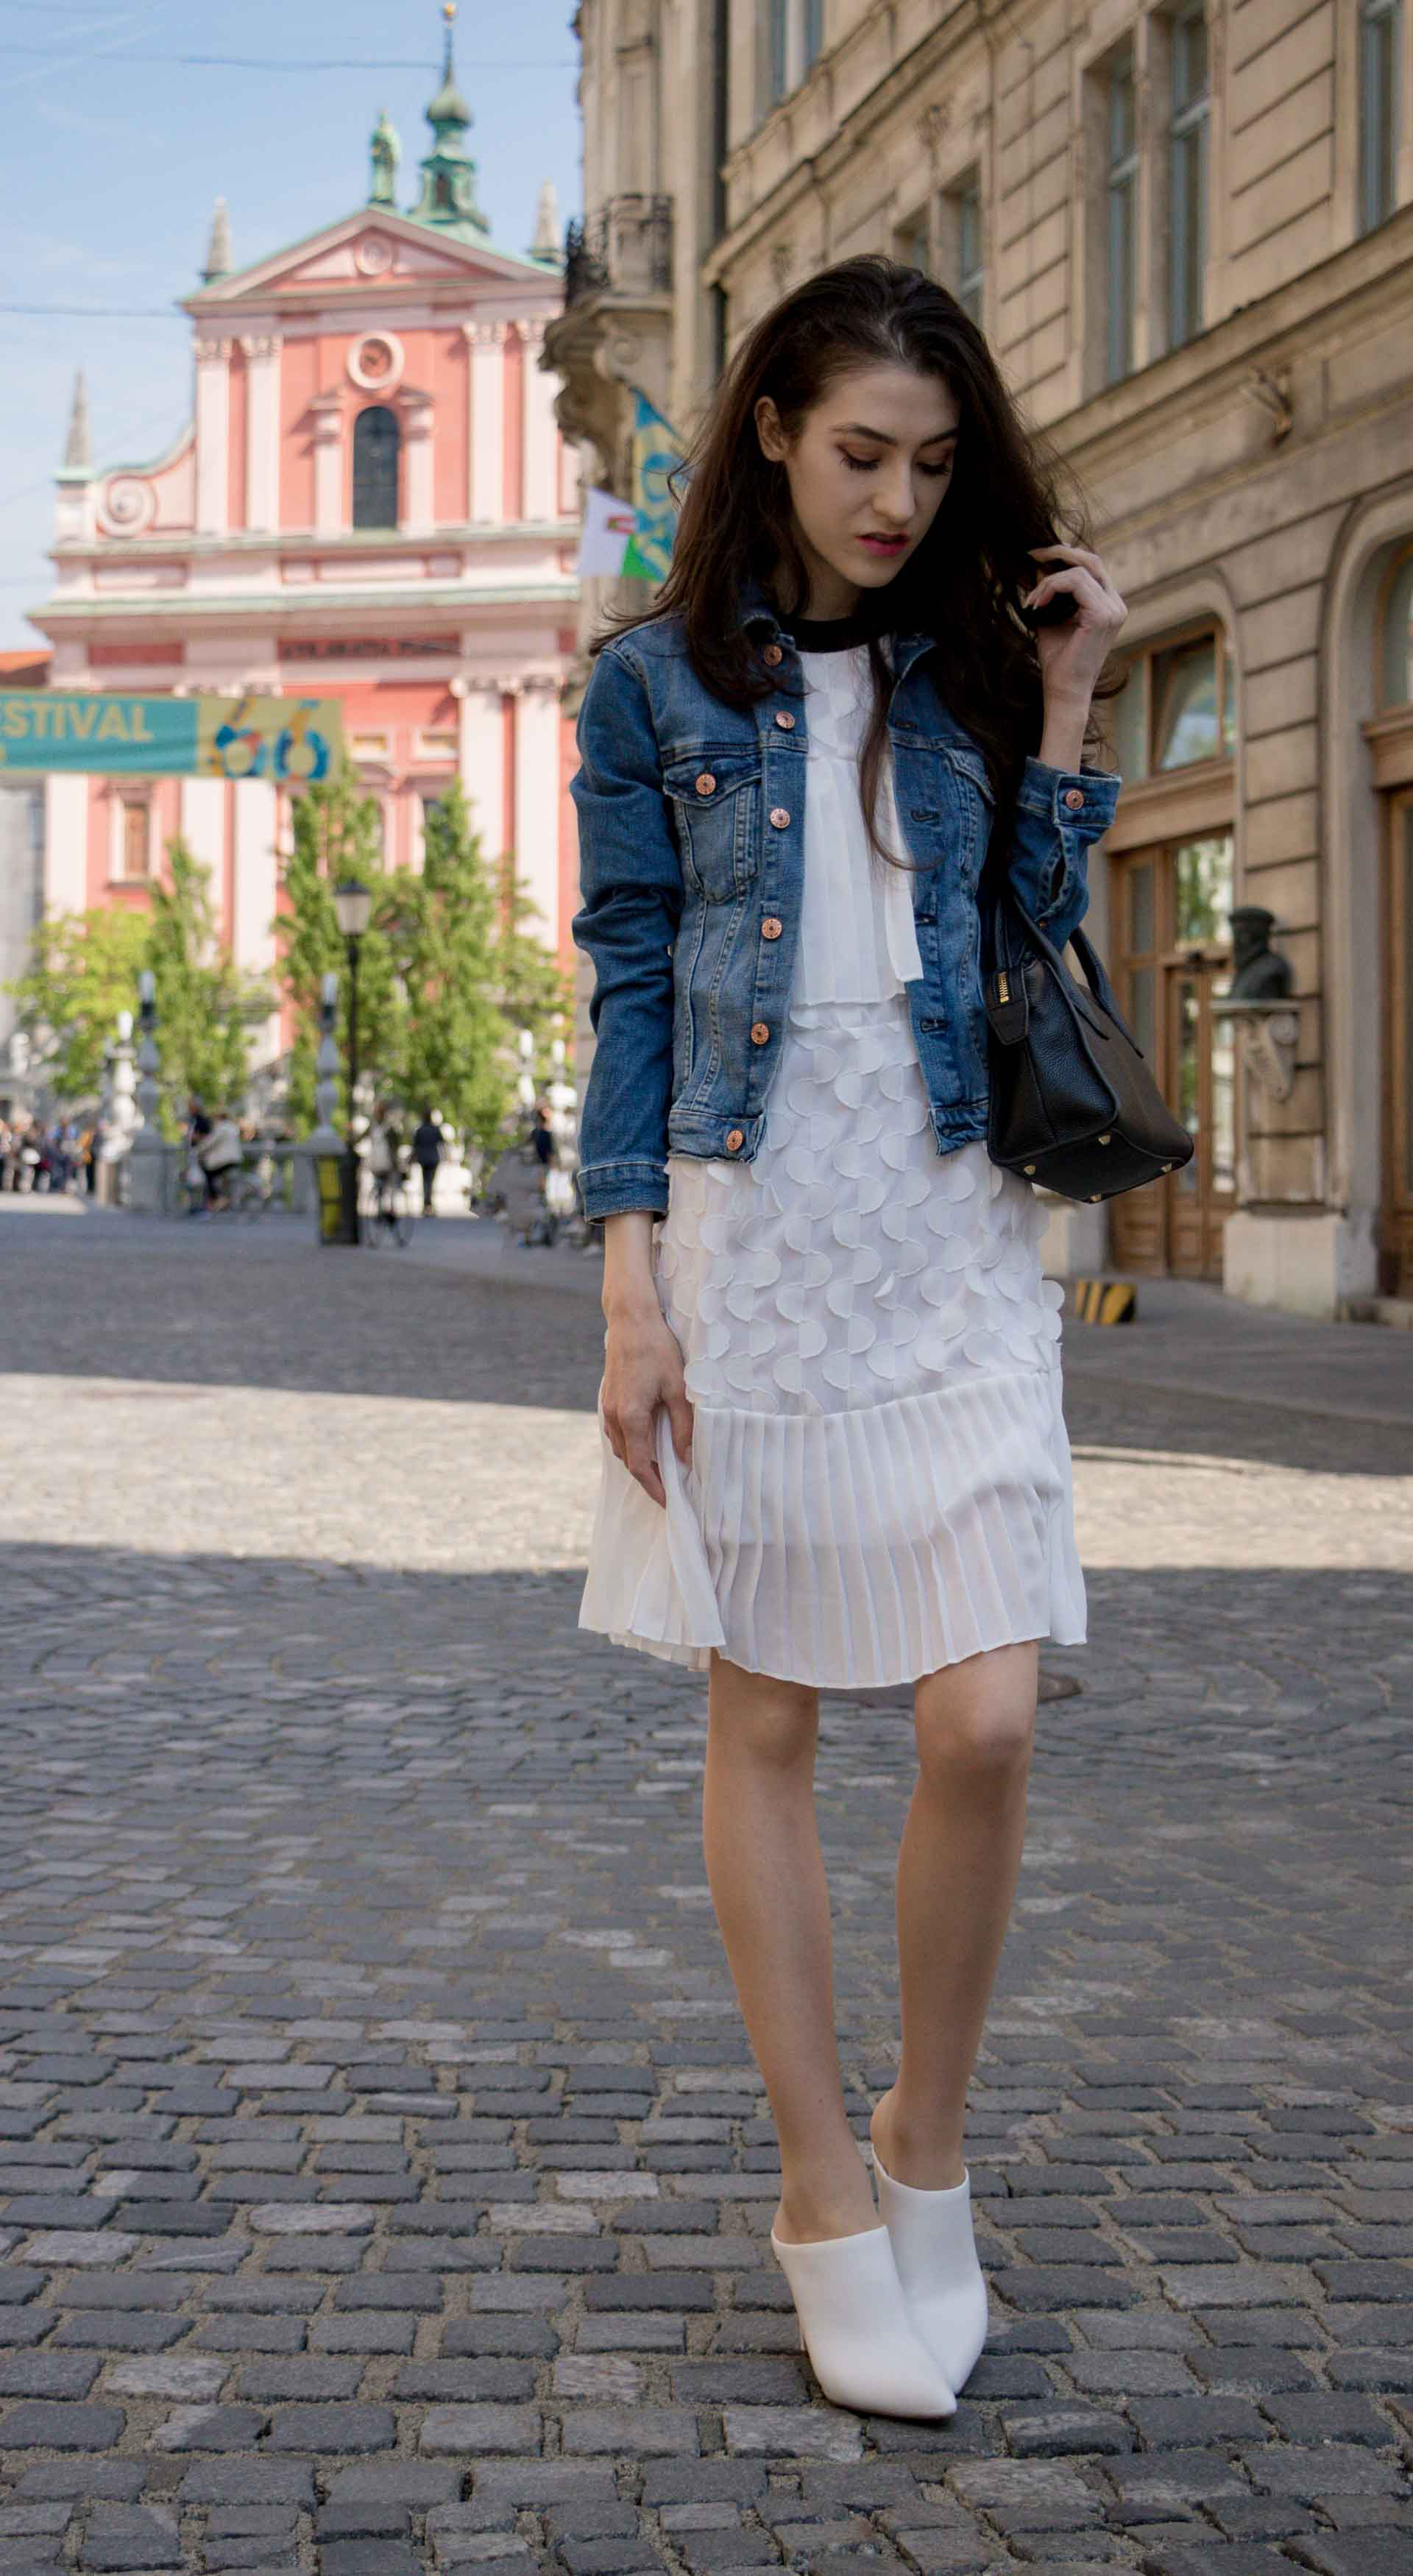 Veronika Lipar Fashion Editor of Brunette from Wall Street wearing H&M blue denim jacket, Storets white pleated short dress, white mules and Adam Selman x Le Specs white cat eye Lolita sunglasses, black small bag standing on the street